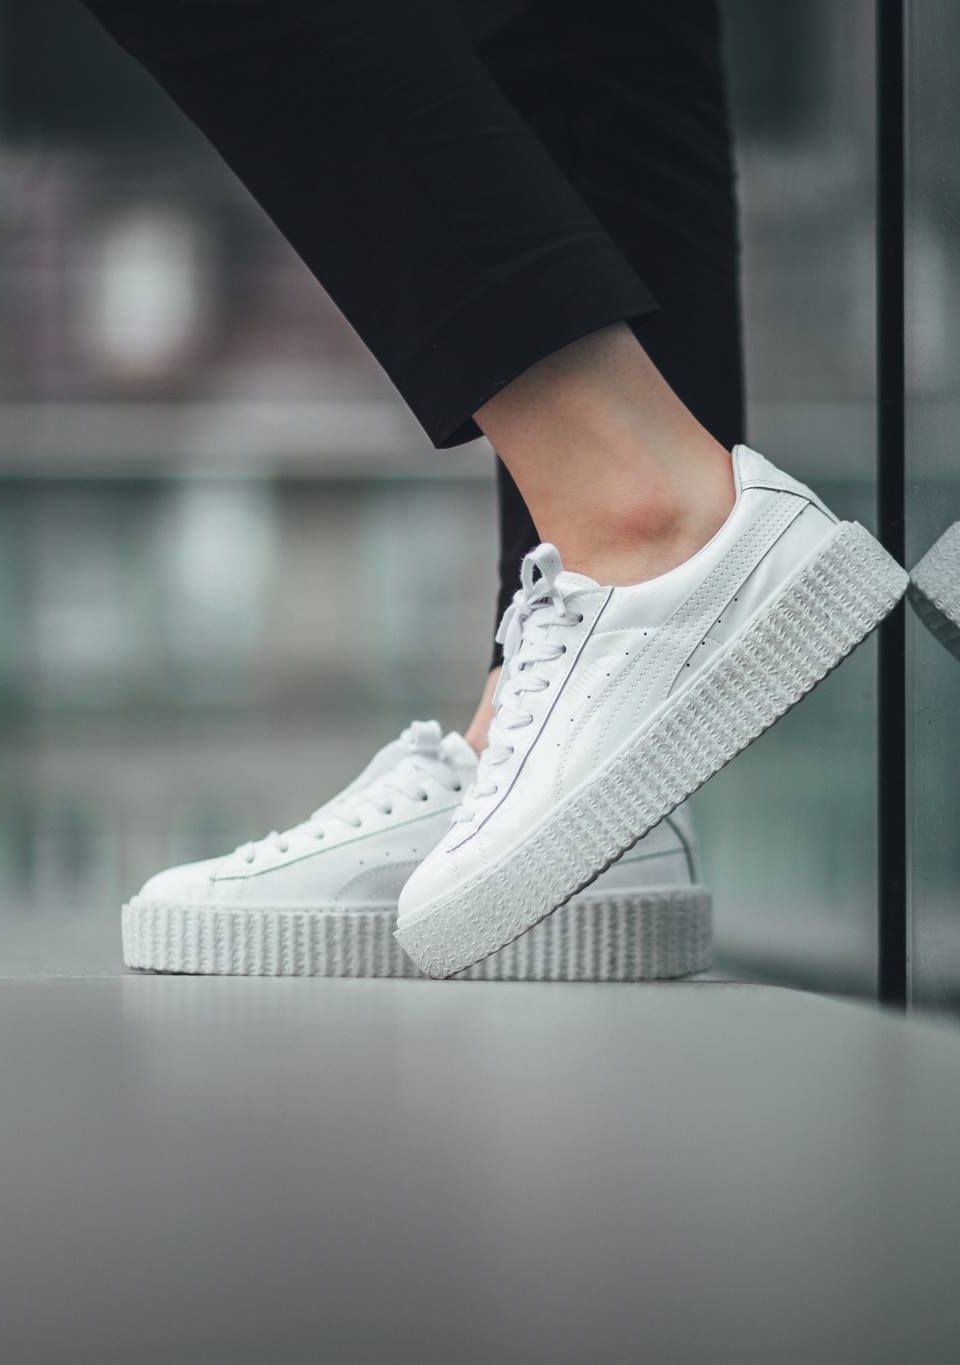 pretty nice 677f7 9a7f2 Puma x Rihanna Basket Creepers 'Triple White' (via Kicks ...